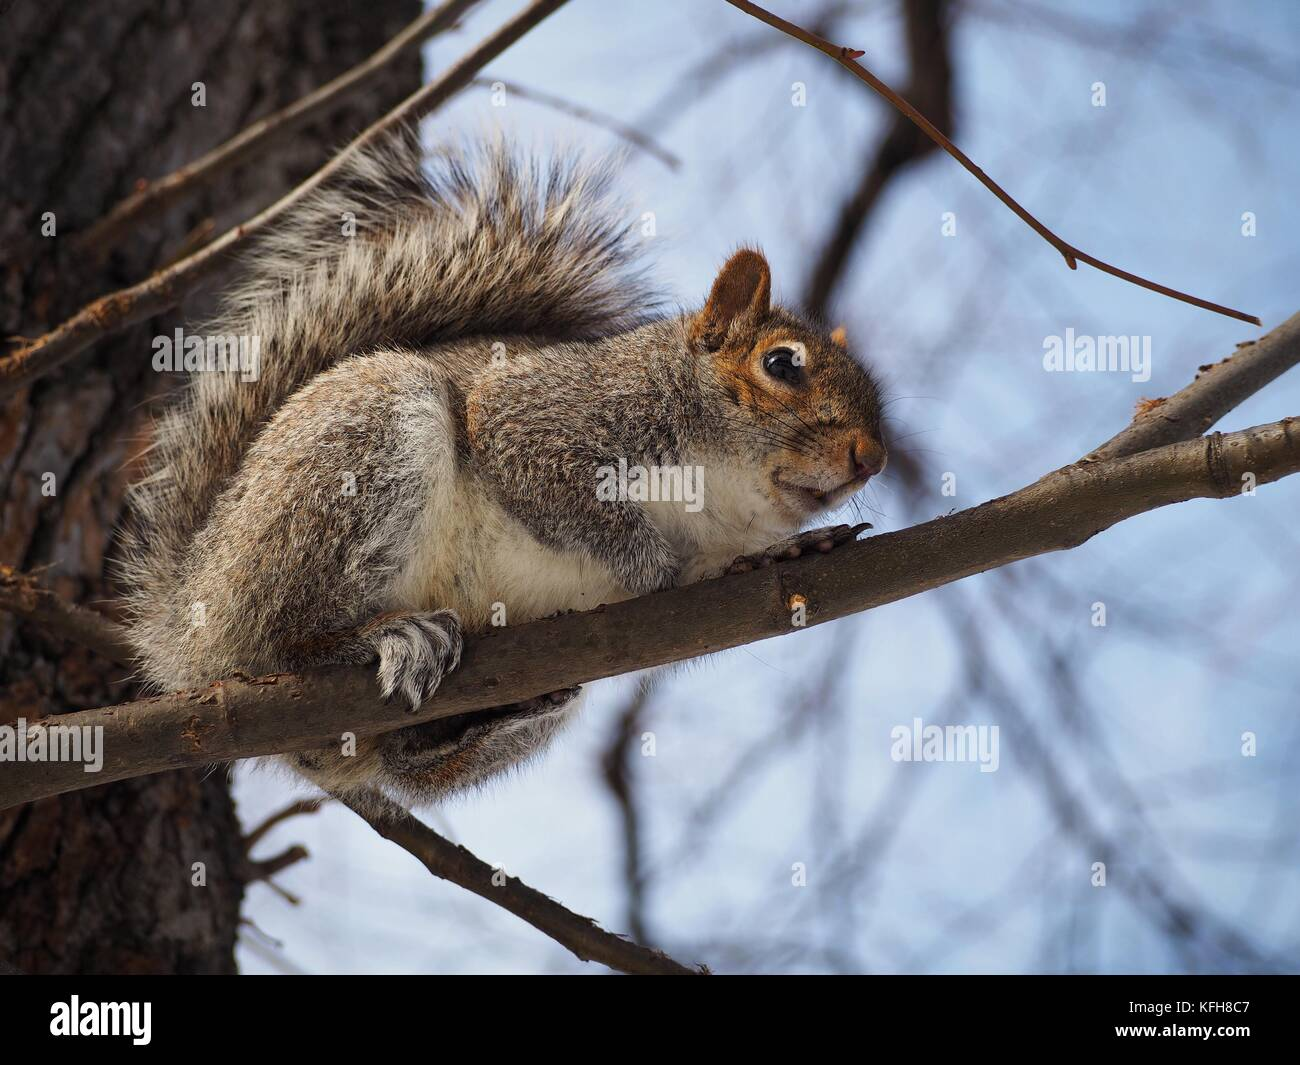 Eastern grey squirrel sitting on a tree, from below - Stock Image